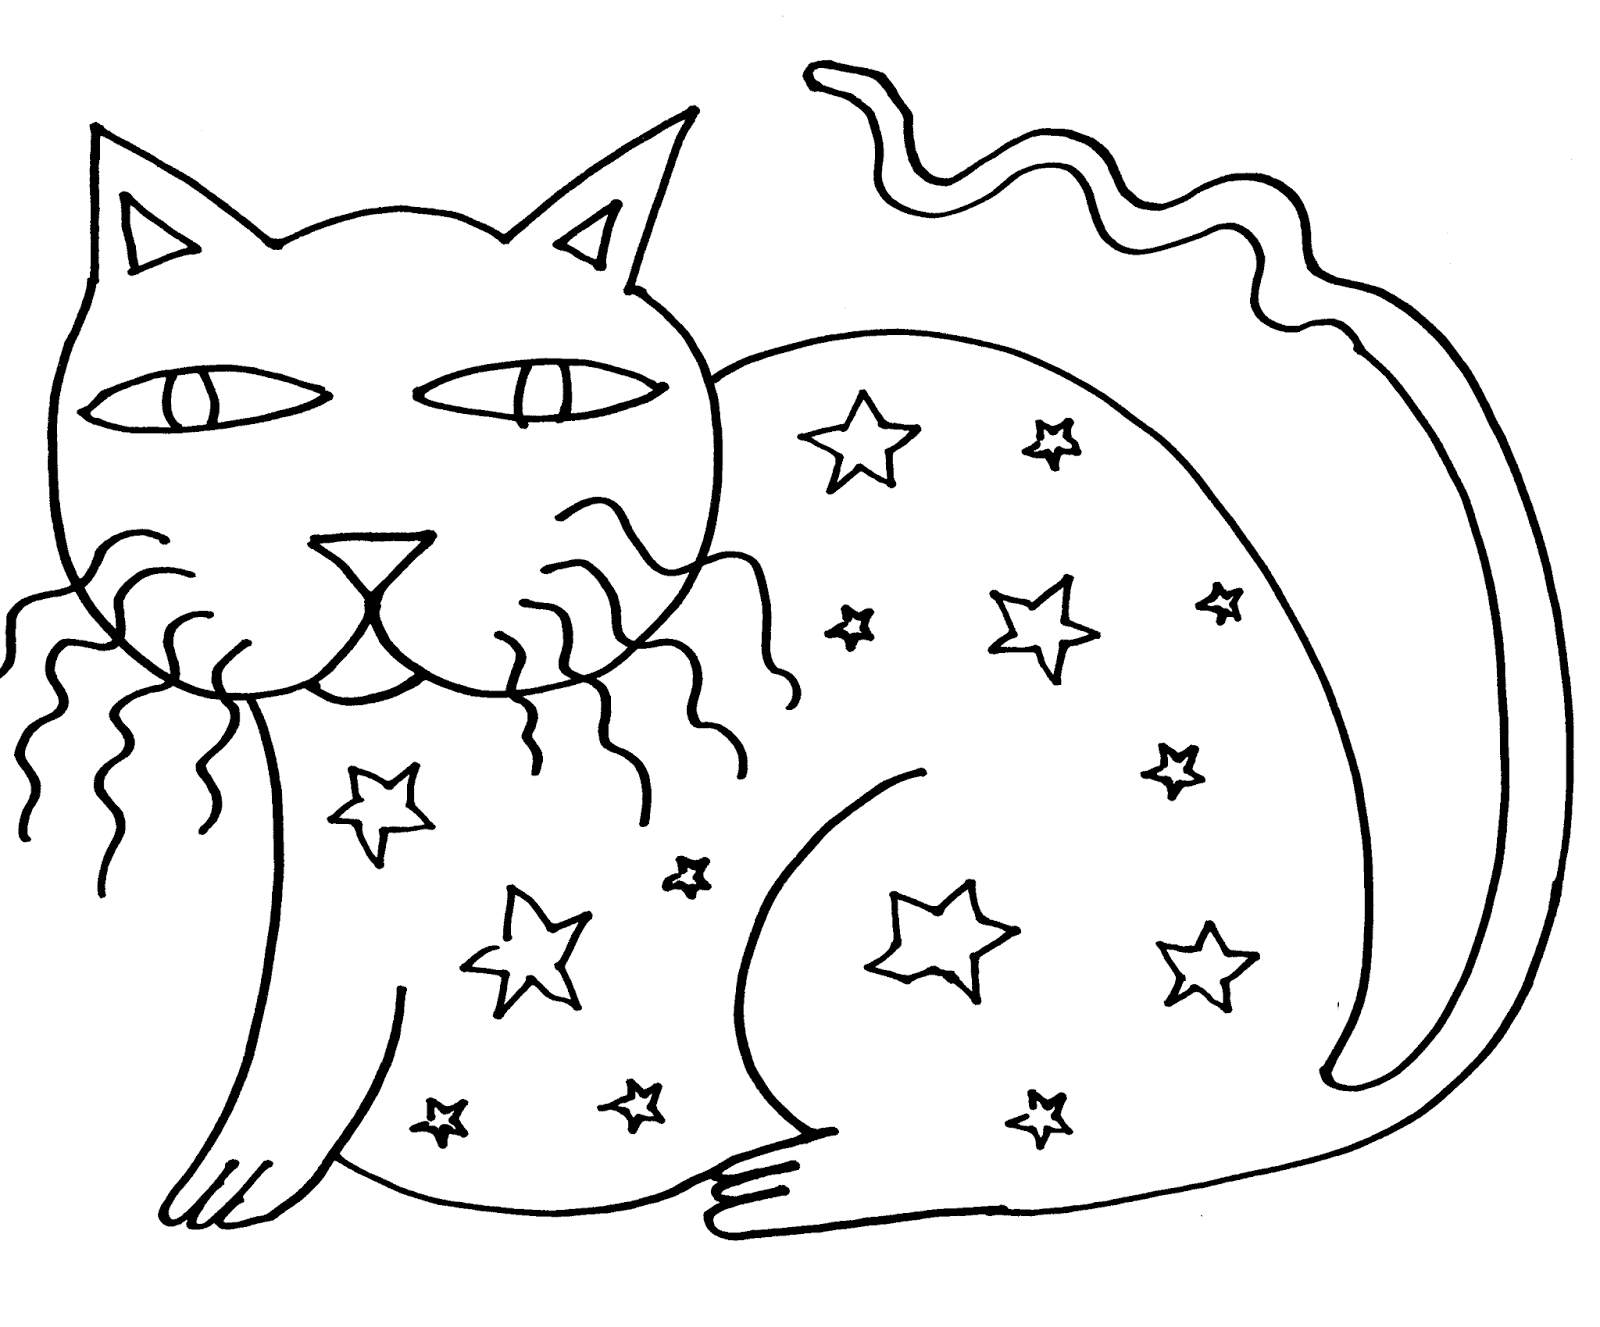 1600x1327 Surprising Crazy Cat Coloring Pages With Crazy Coloring Pages